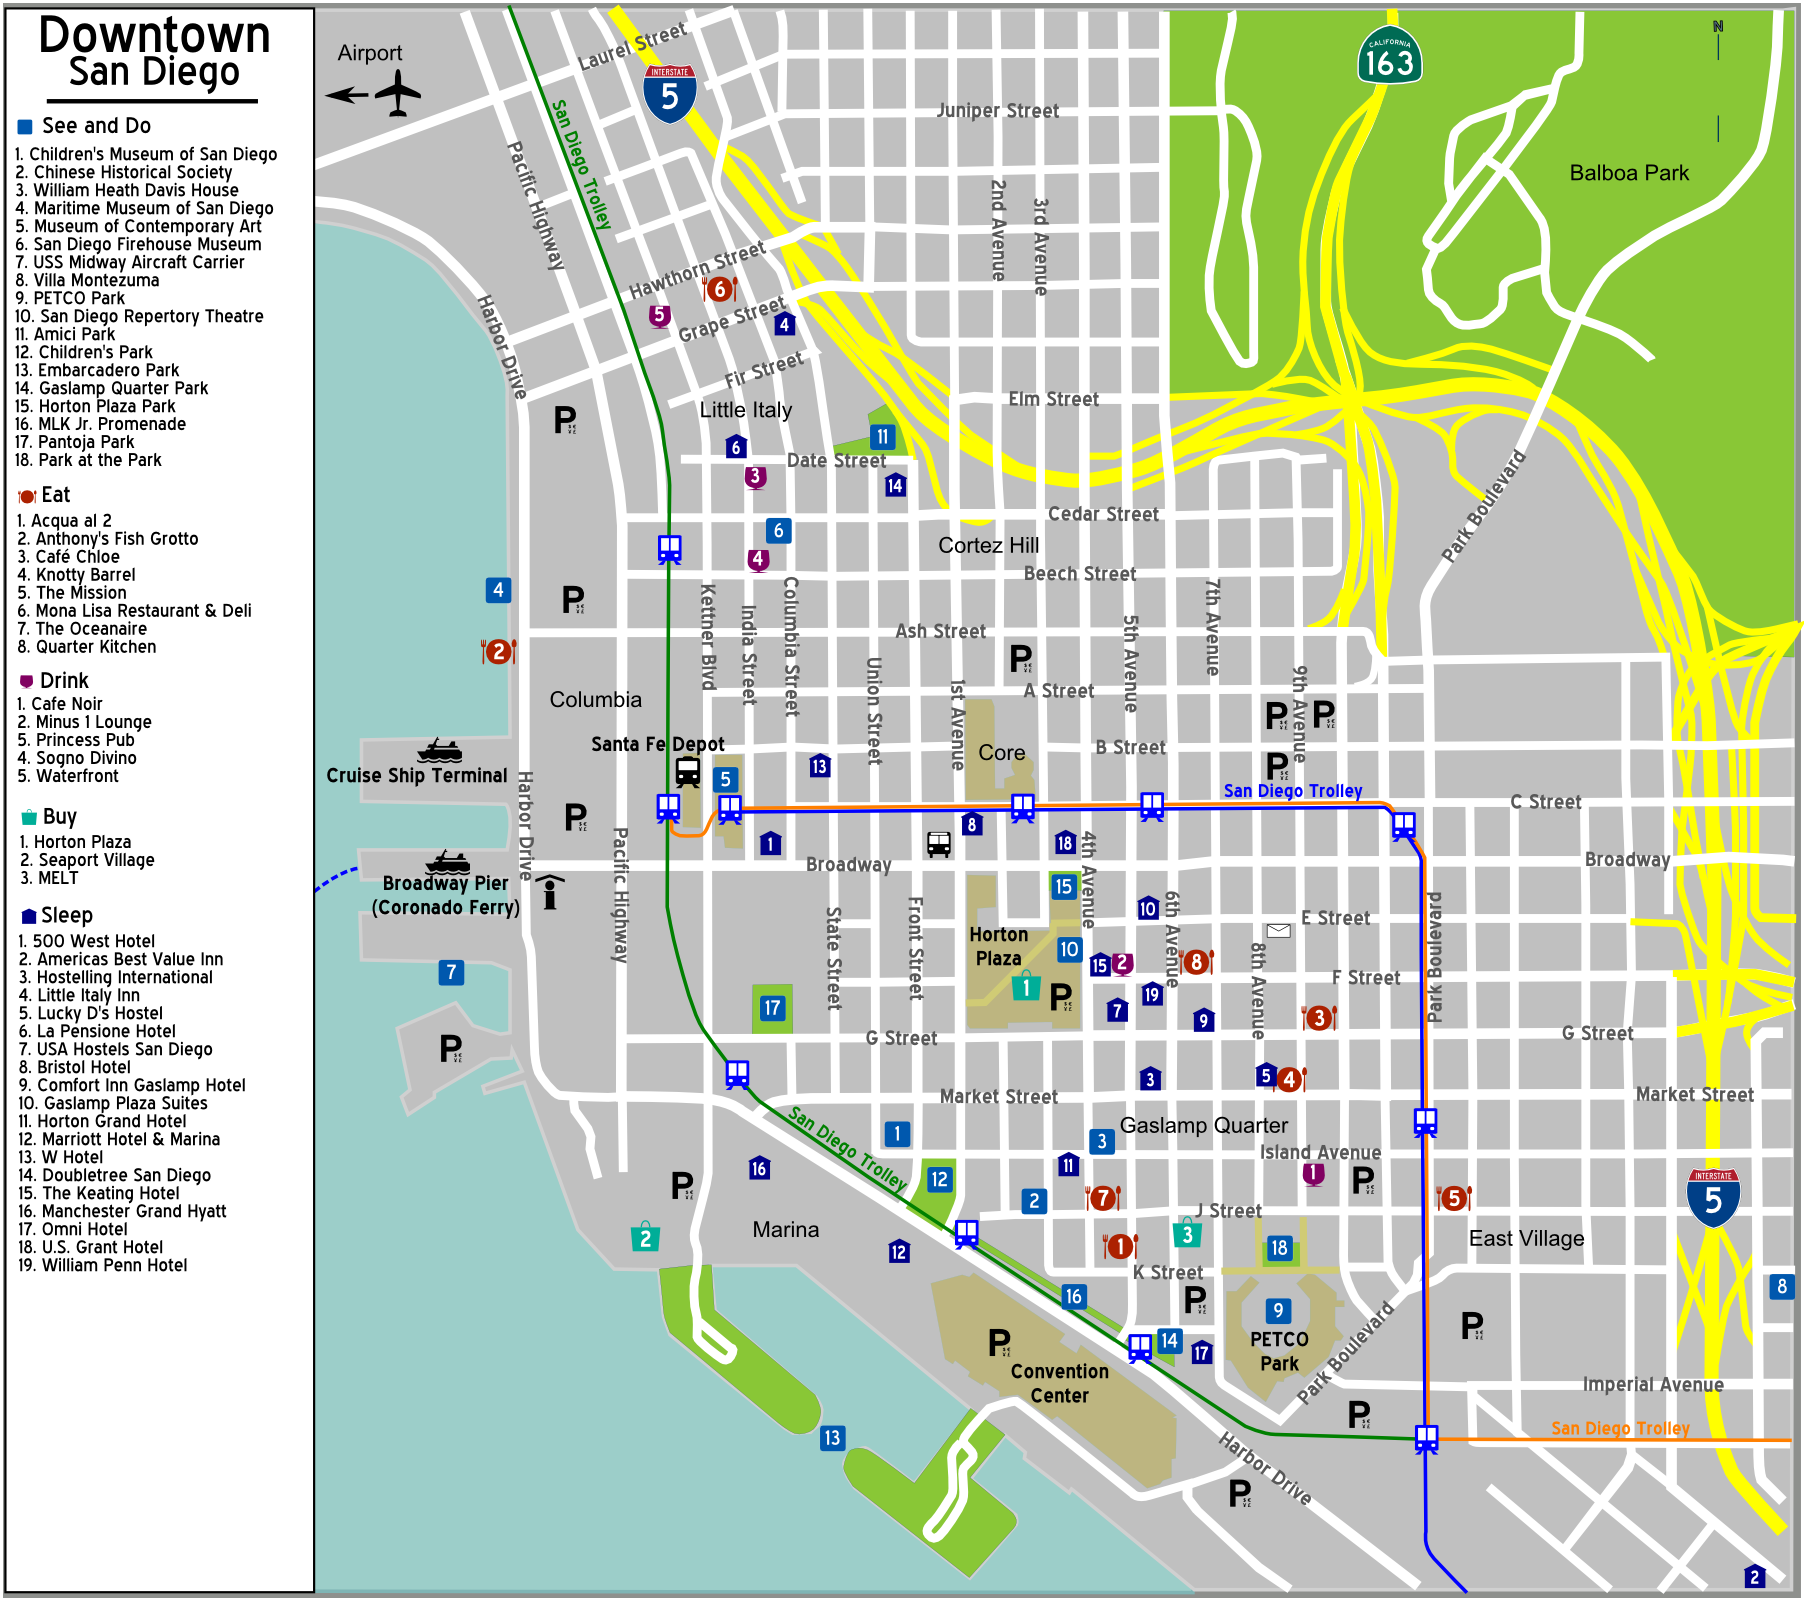 FileDowntown sandiego mapPNG Wikimedia Commons